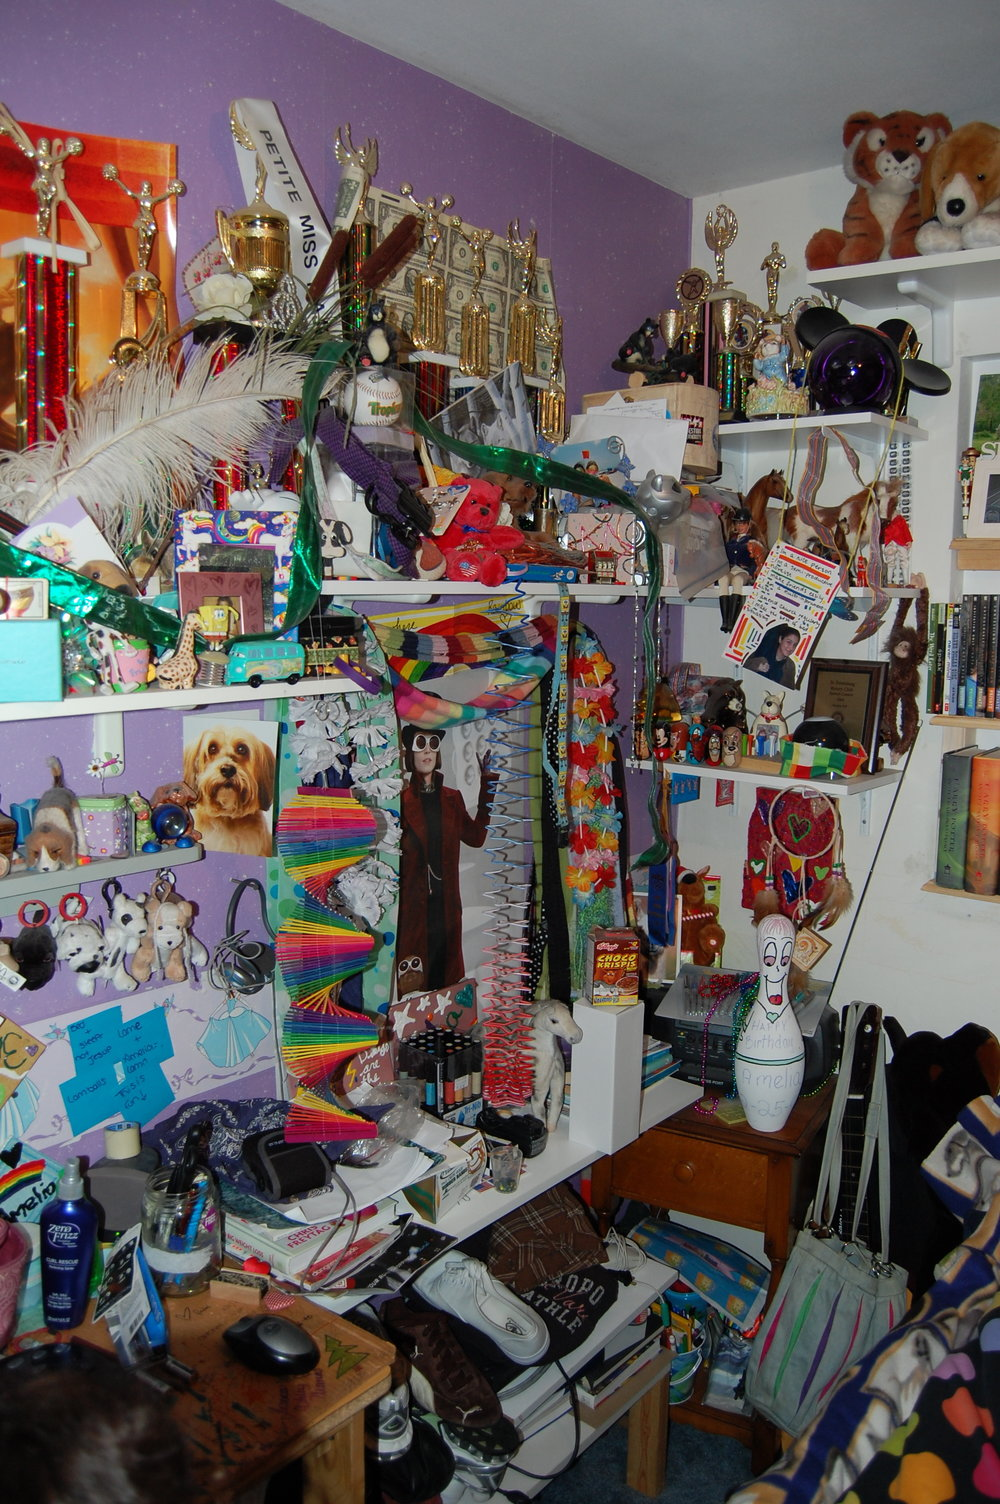 My childhood bedroom, circa 2007